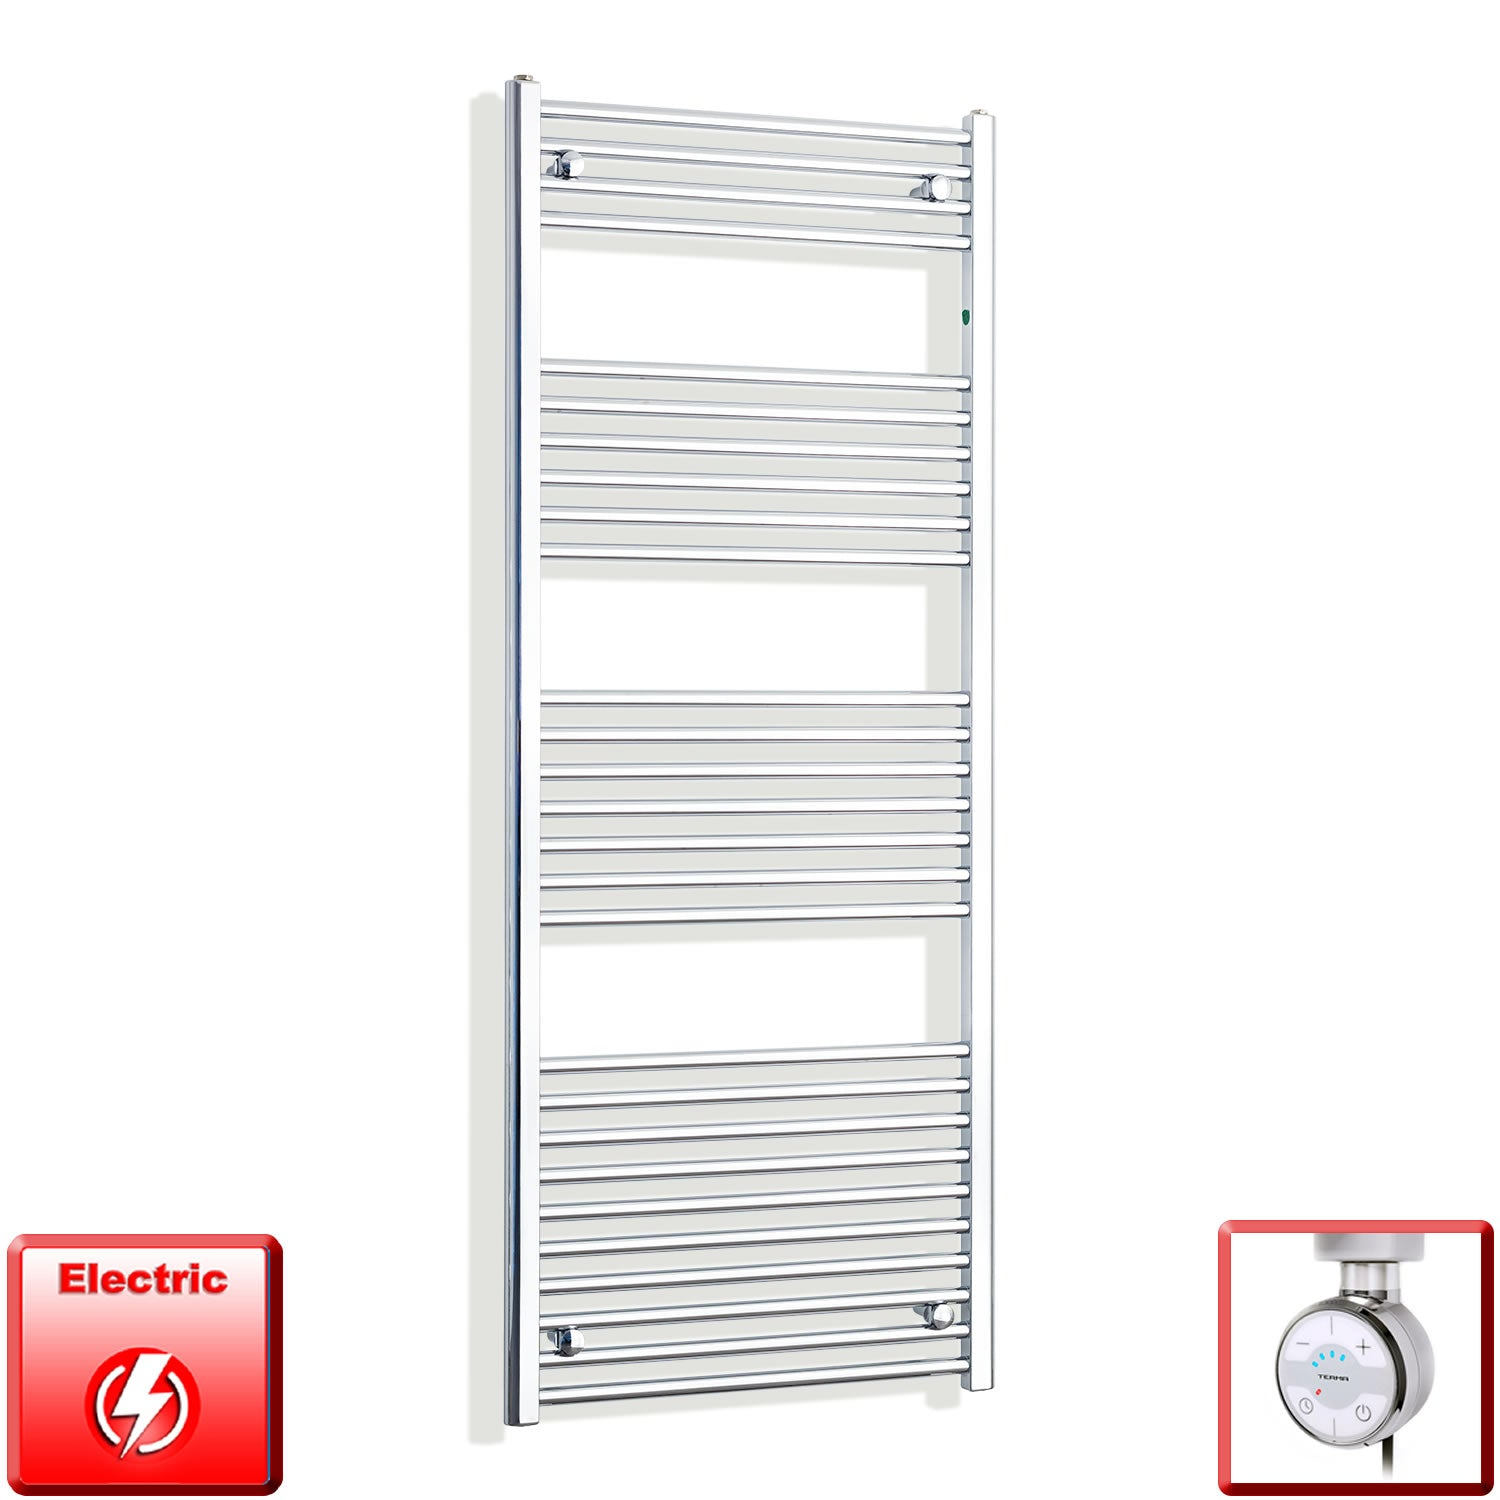 650mm Wide 1600mm High Pre-Filled Chrome Electric Towel Rail Radiator With Thermostatic MOA Element